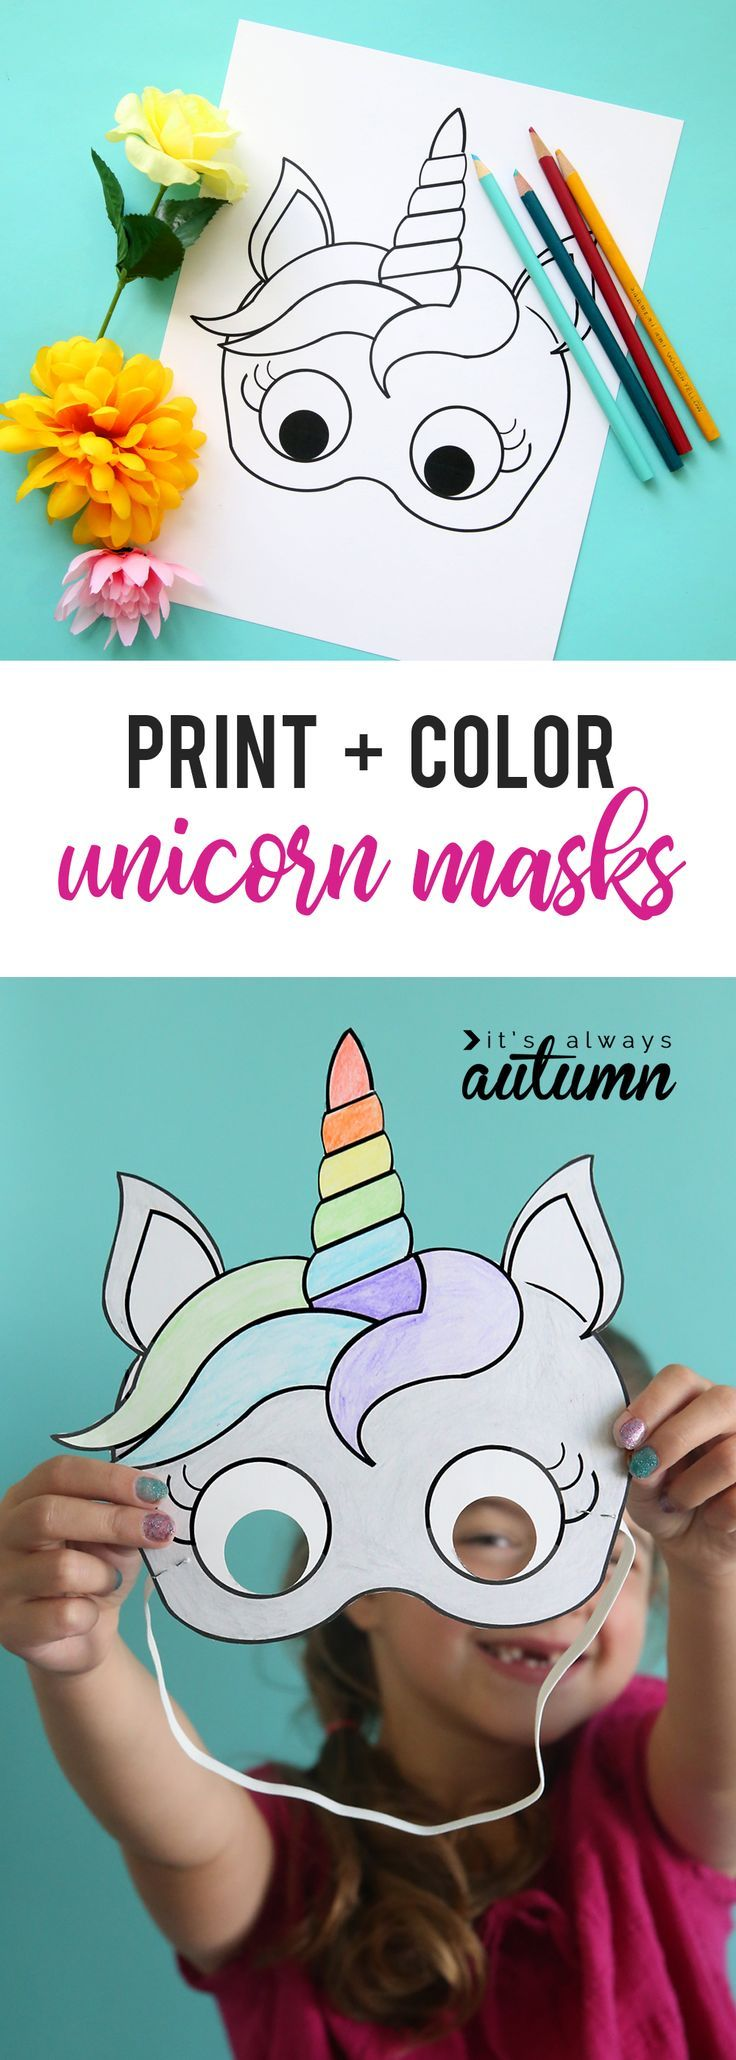 unicorn masks to print and coloration {free printable